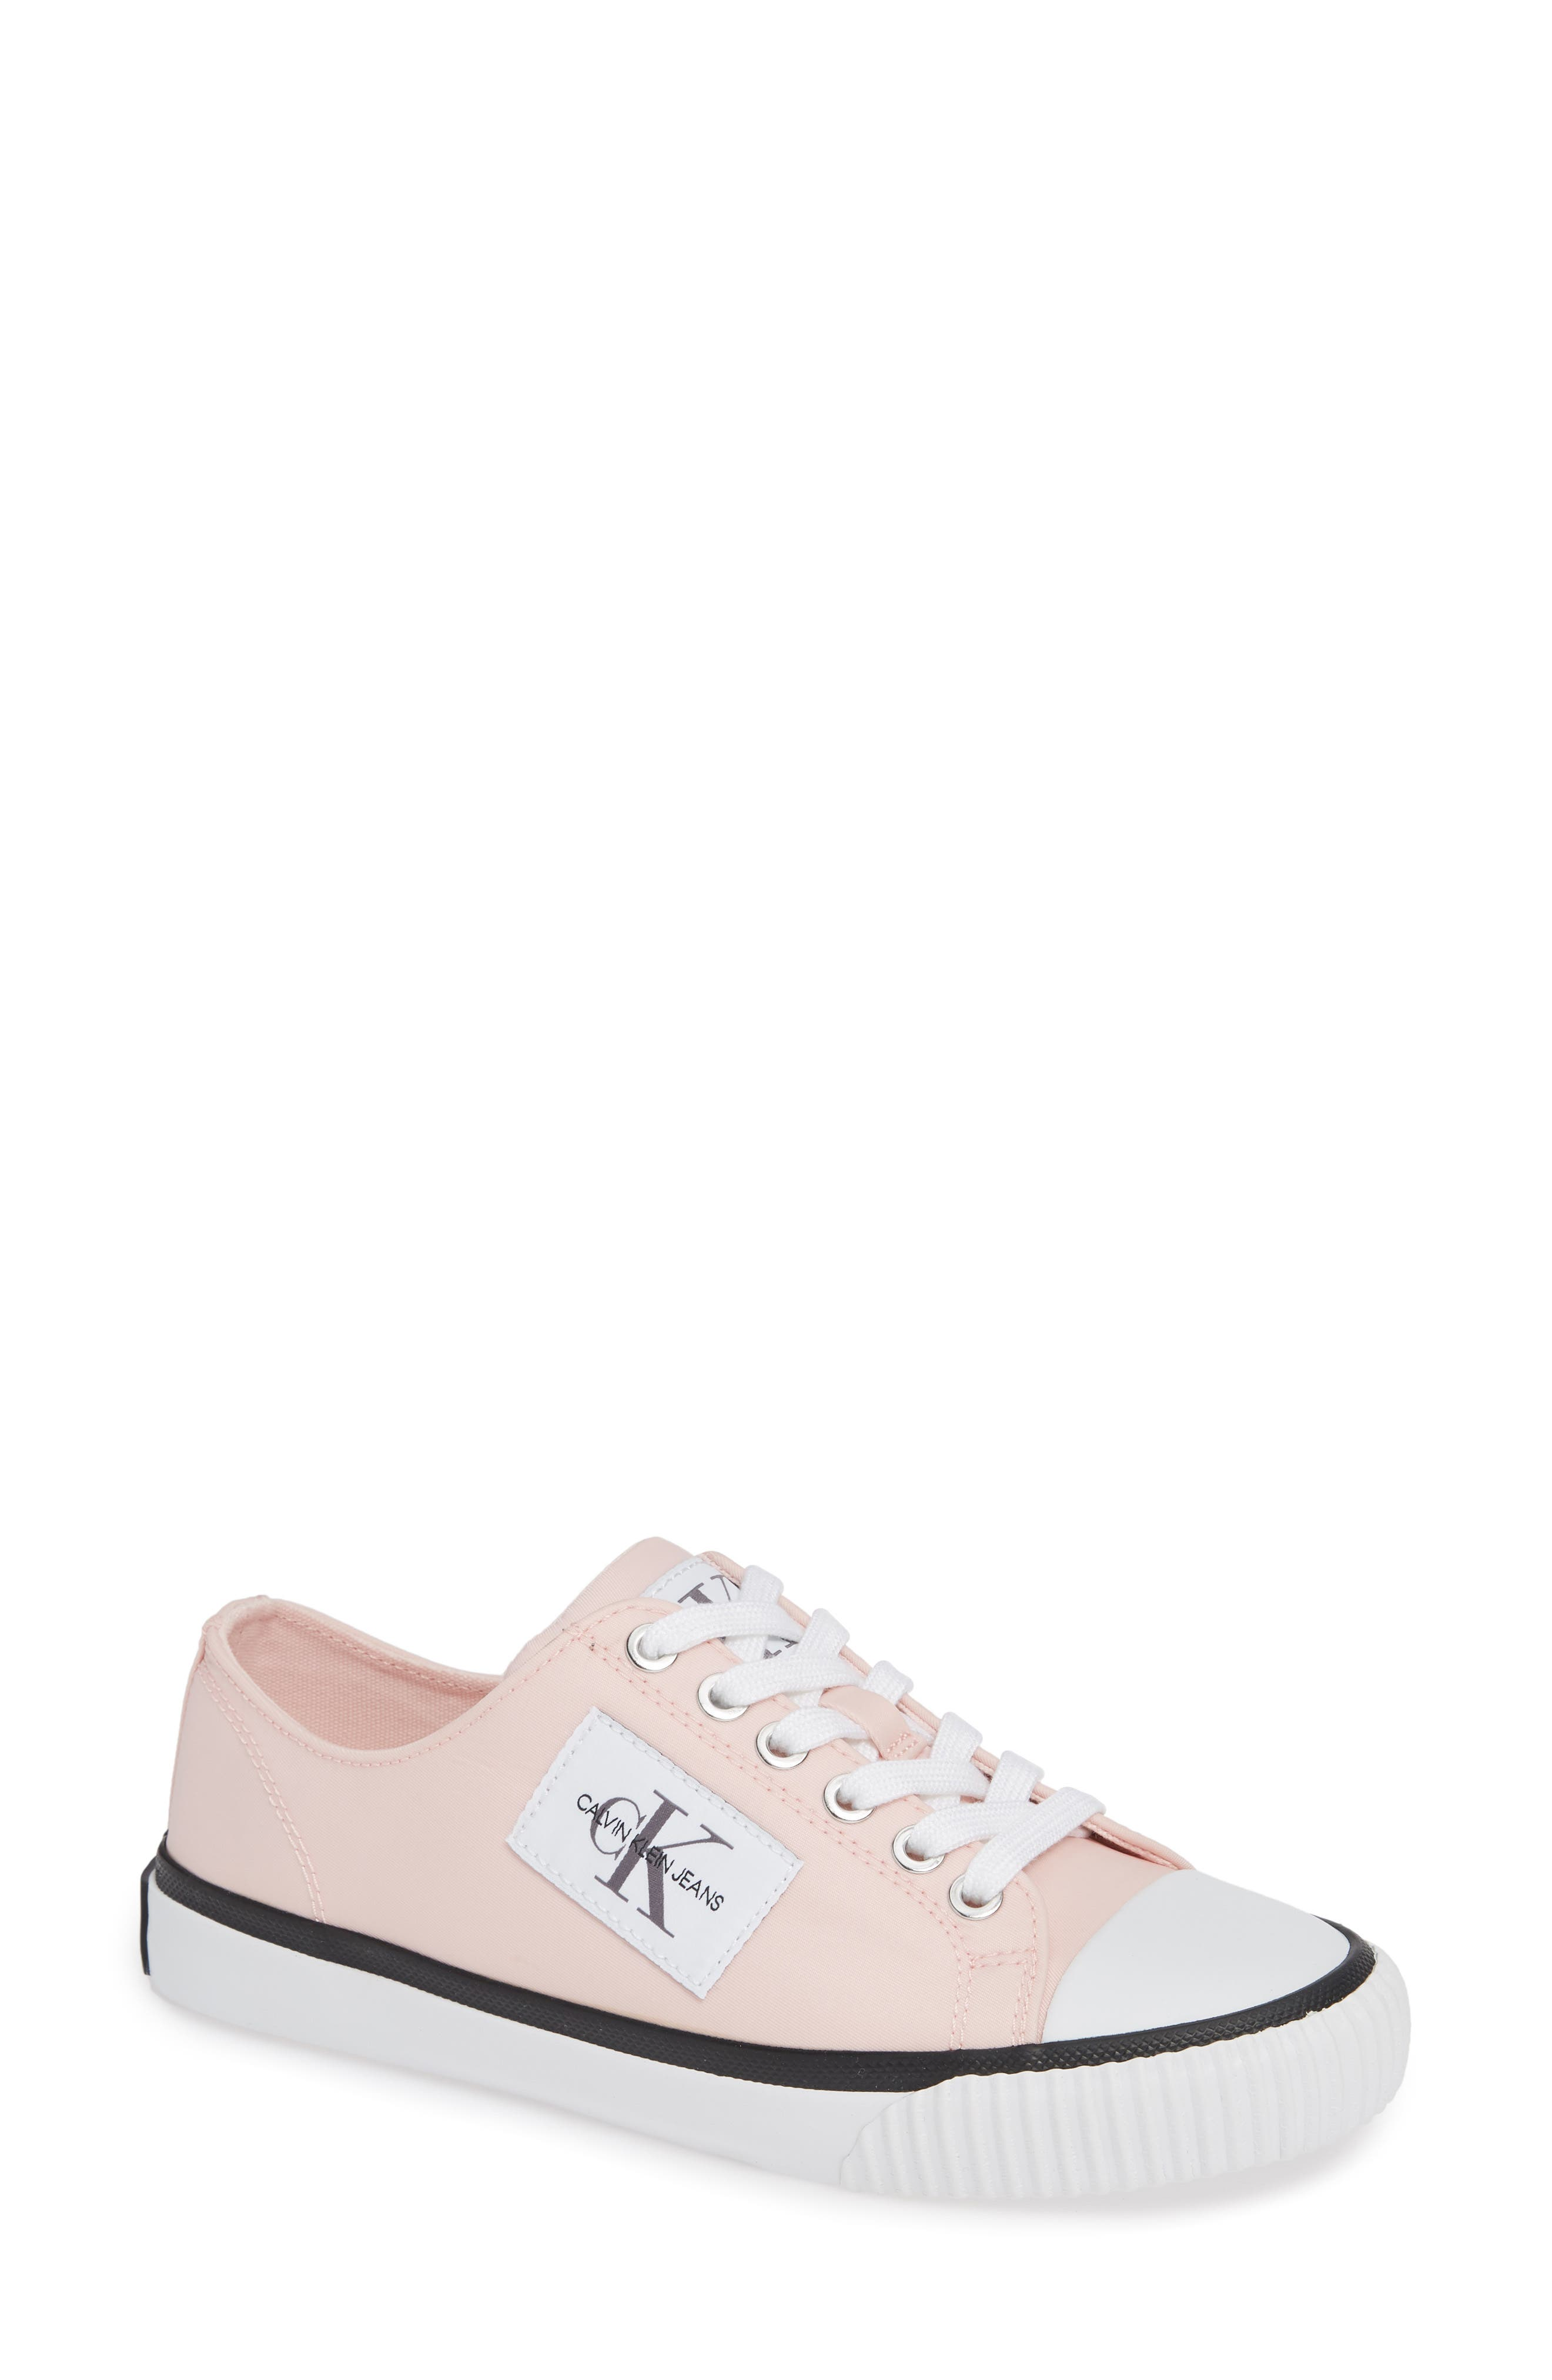 IVORY LACE-UP SNEAKER